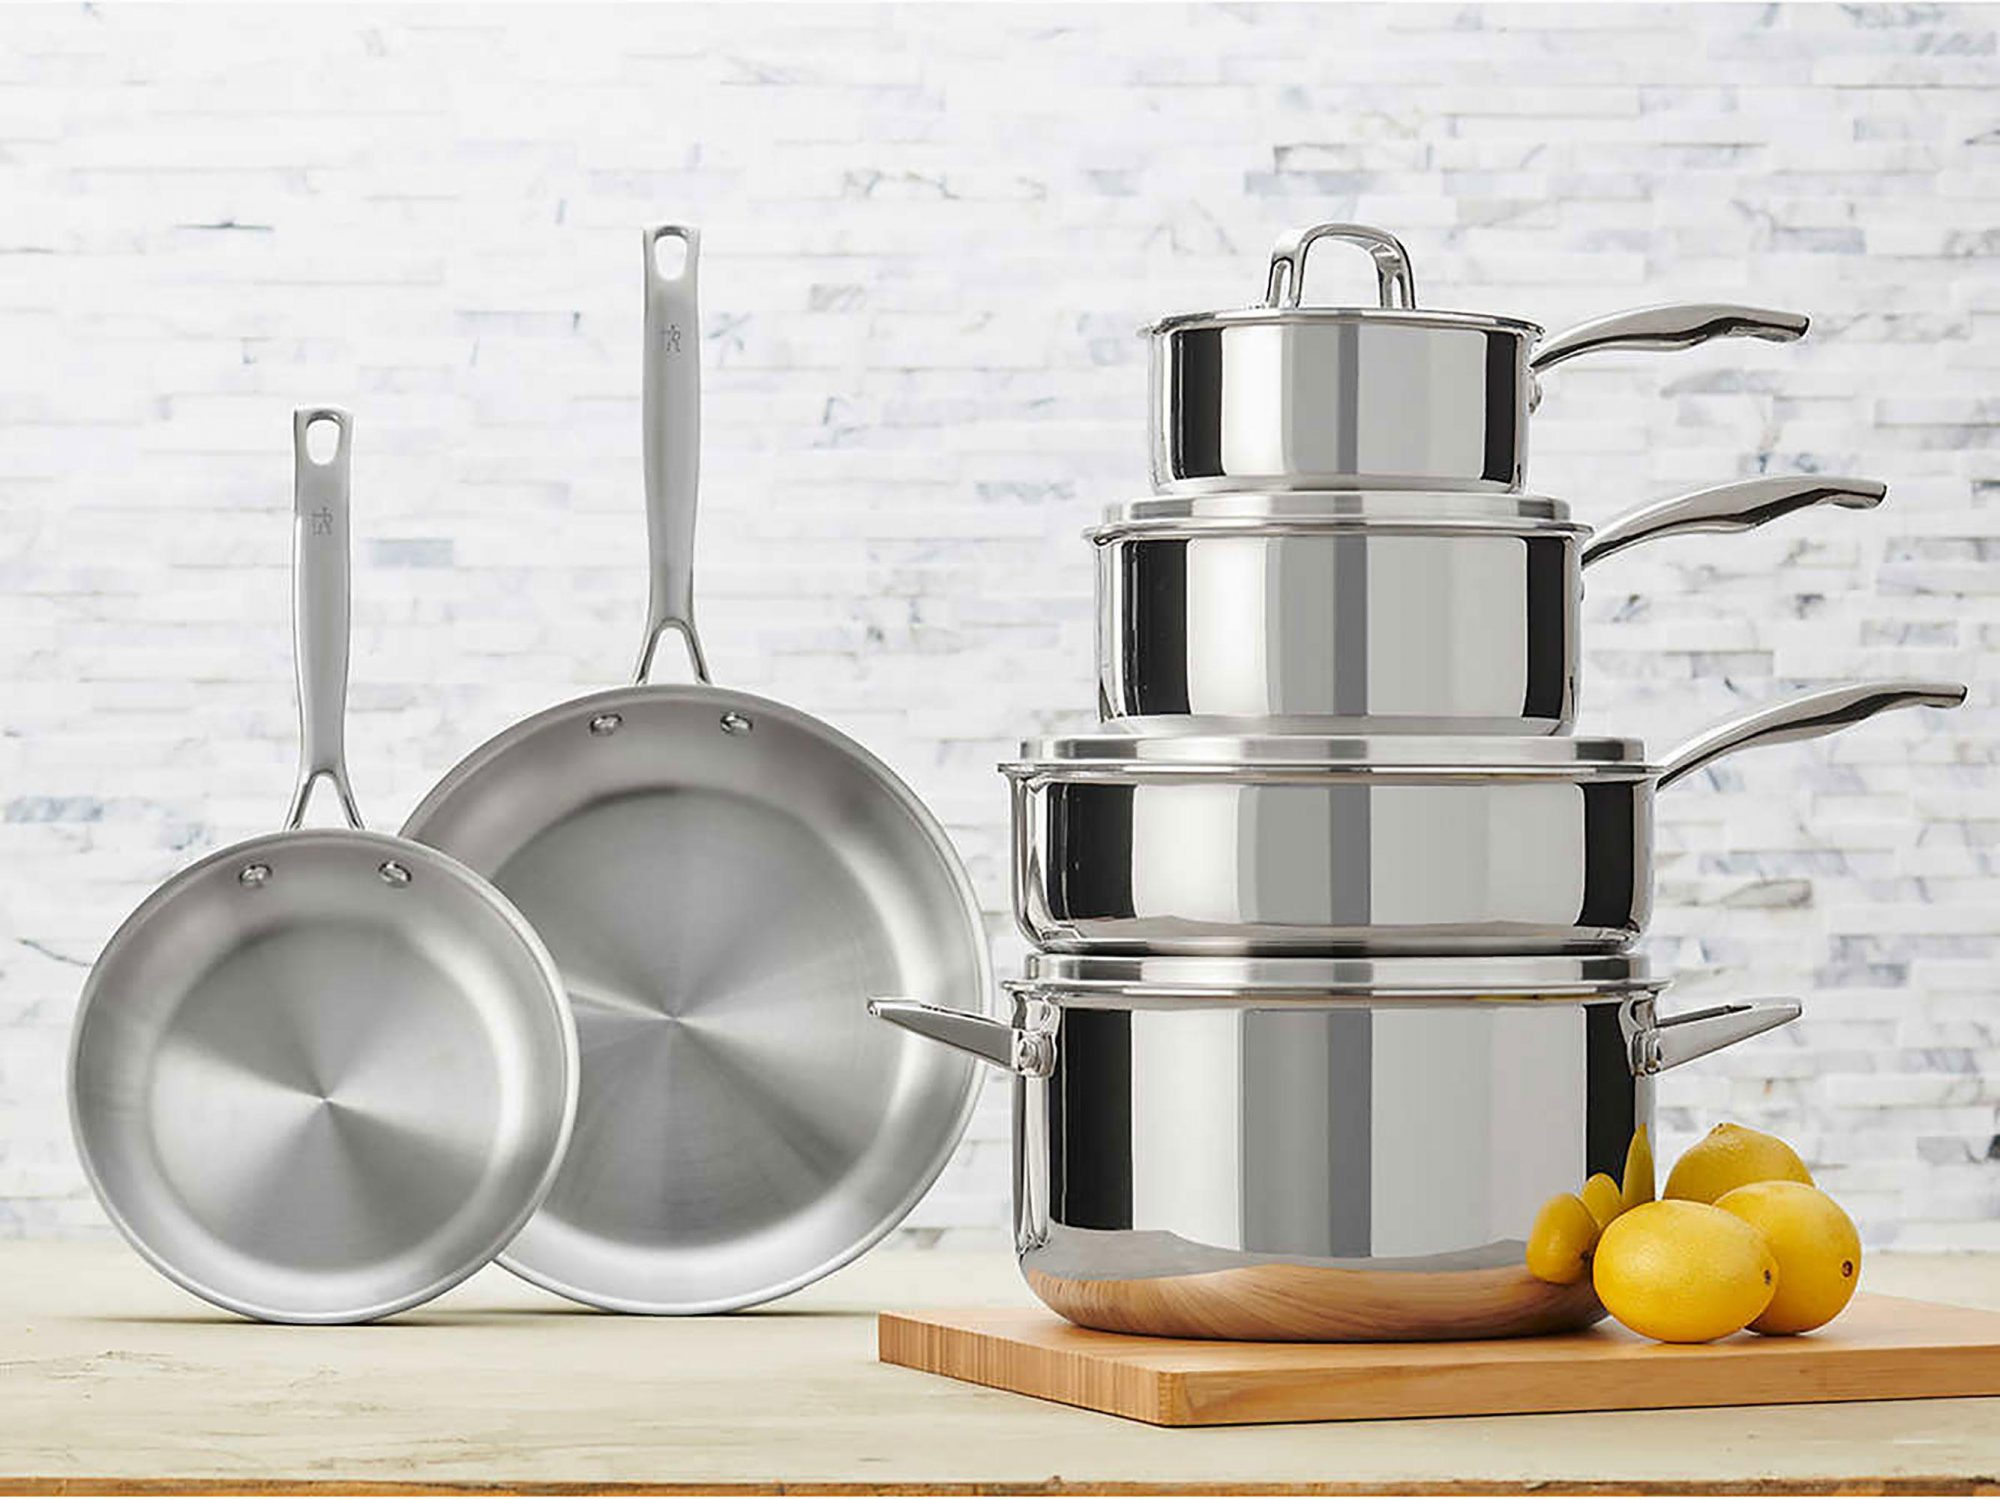 5 Sale Items Every Costco Member Should Buy in February 1901w-Henckles-Pans